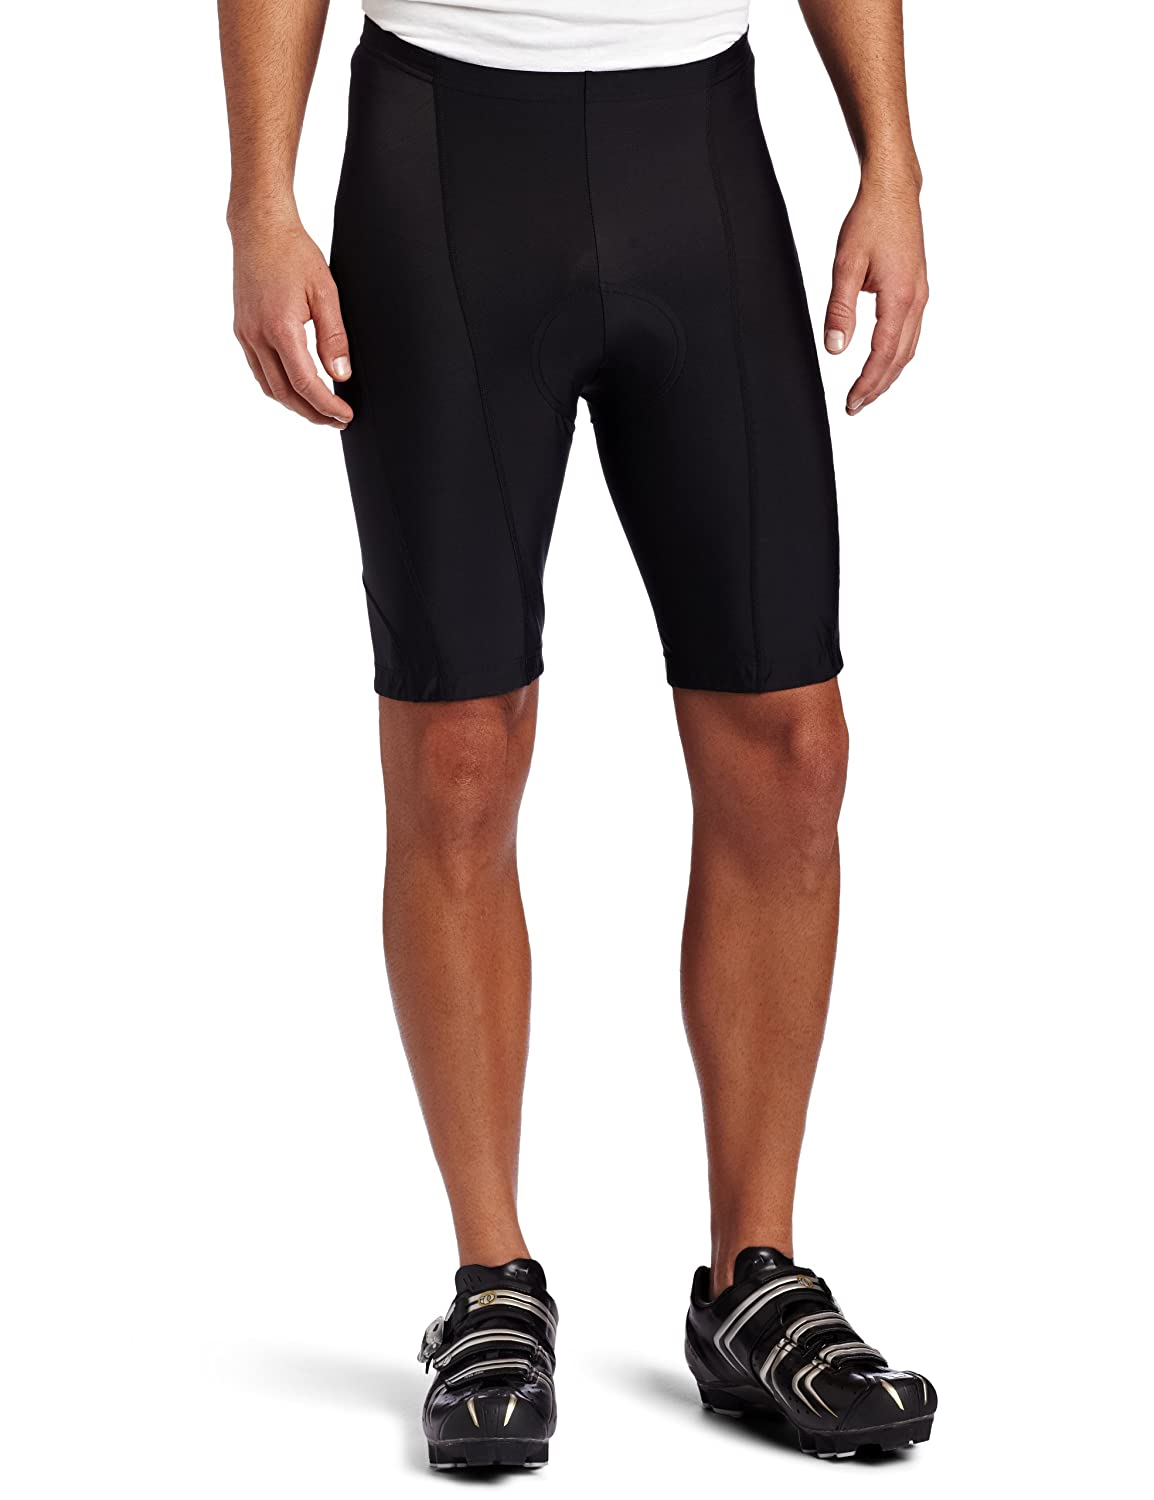 pearlizumi attack men's